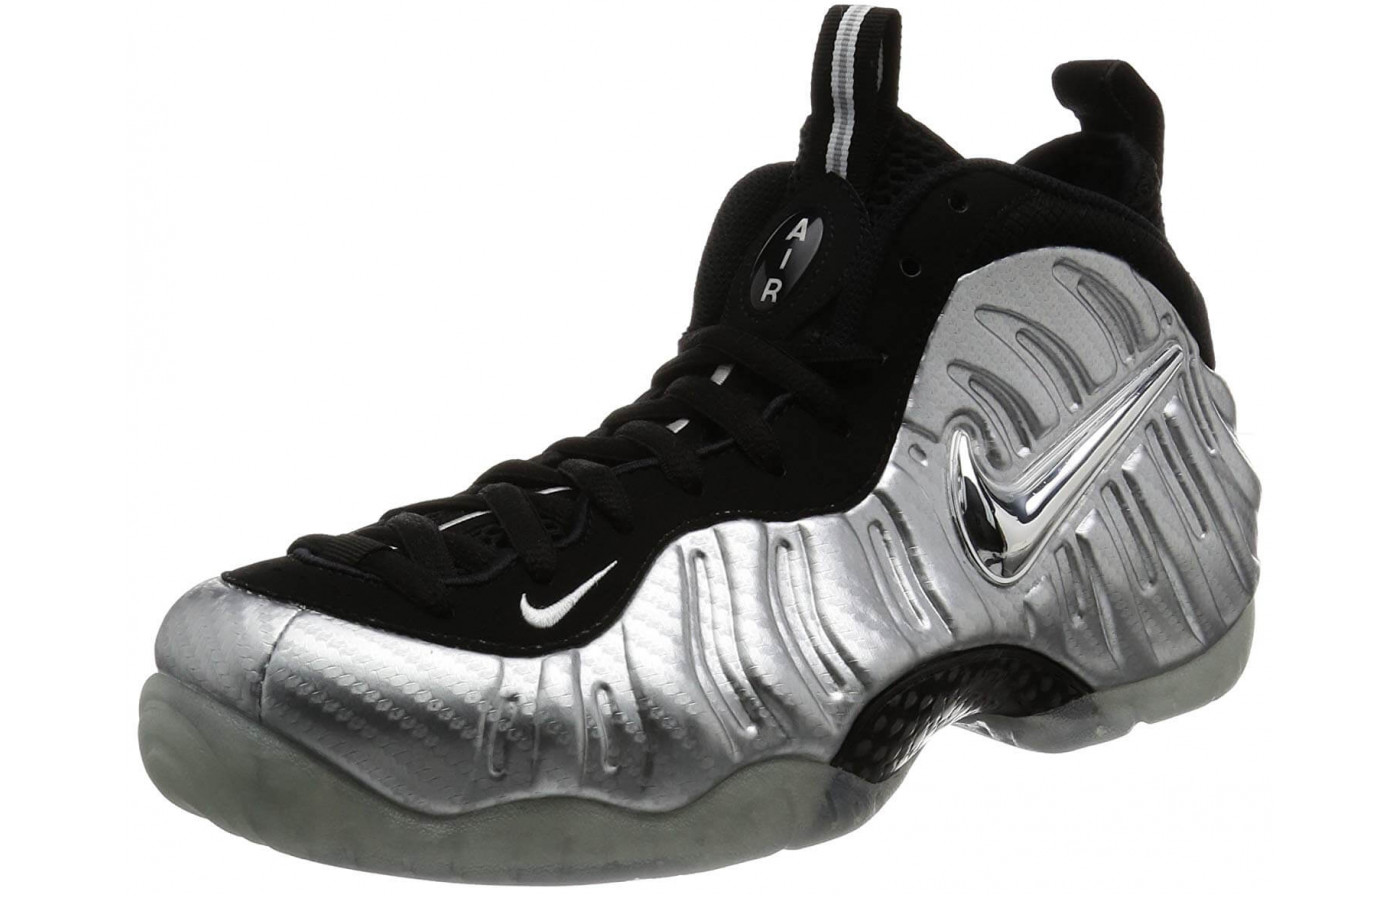 4f5665a05dee Nike Air Foamposite Pro - To Buy or Not in Mar 2019